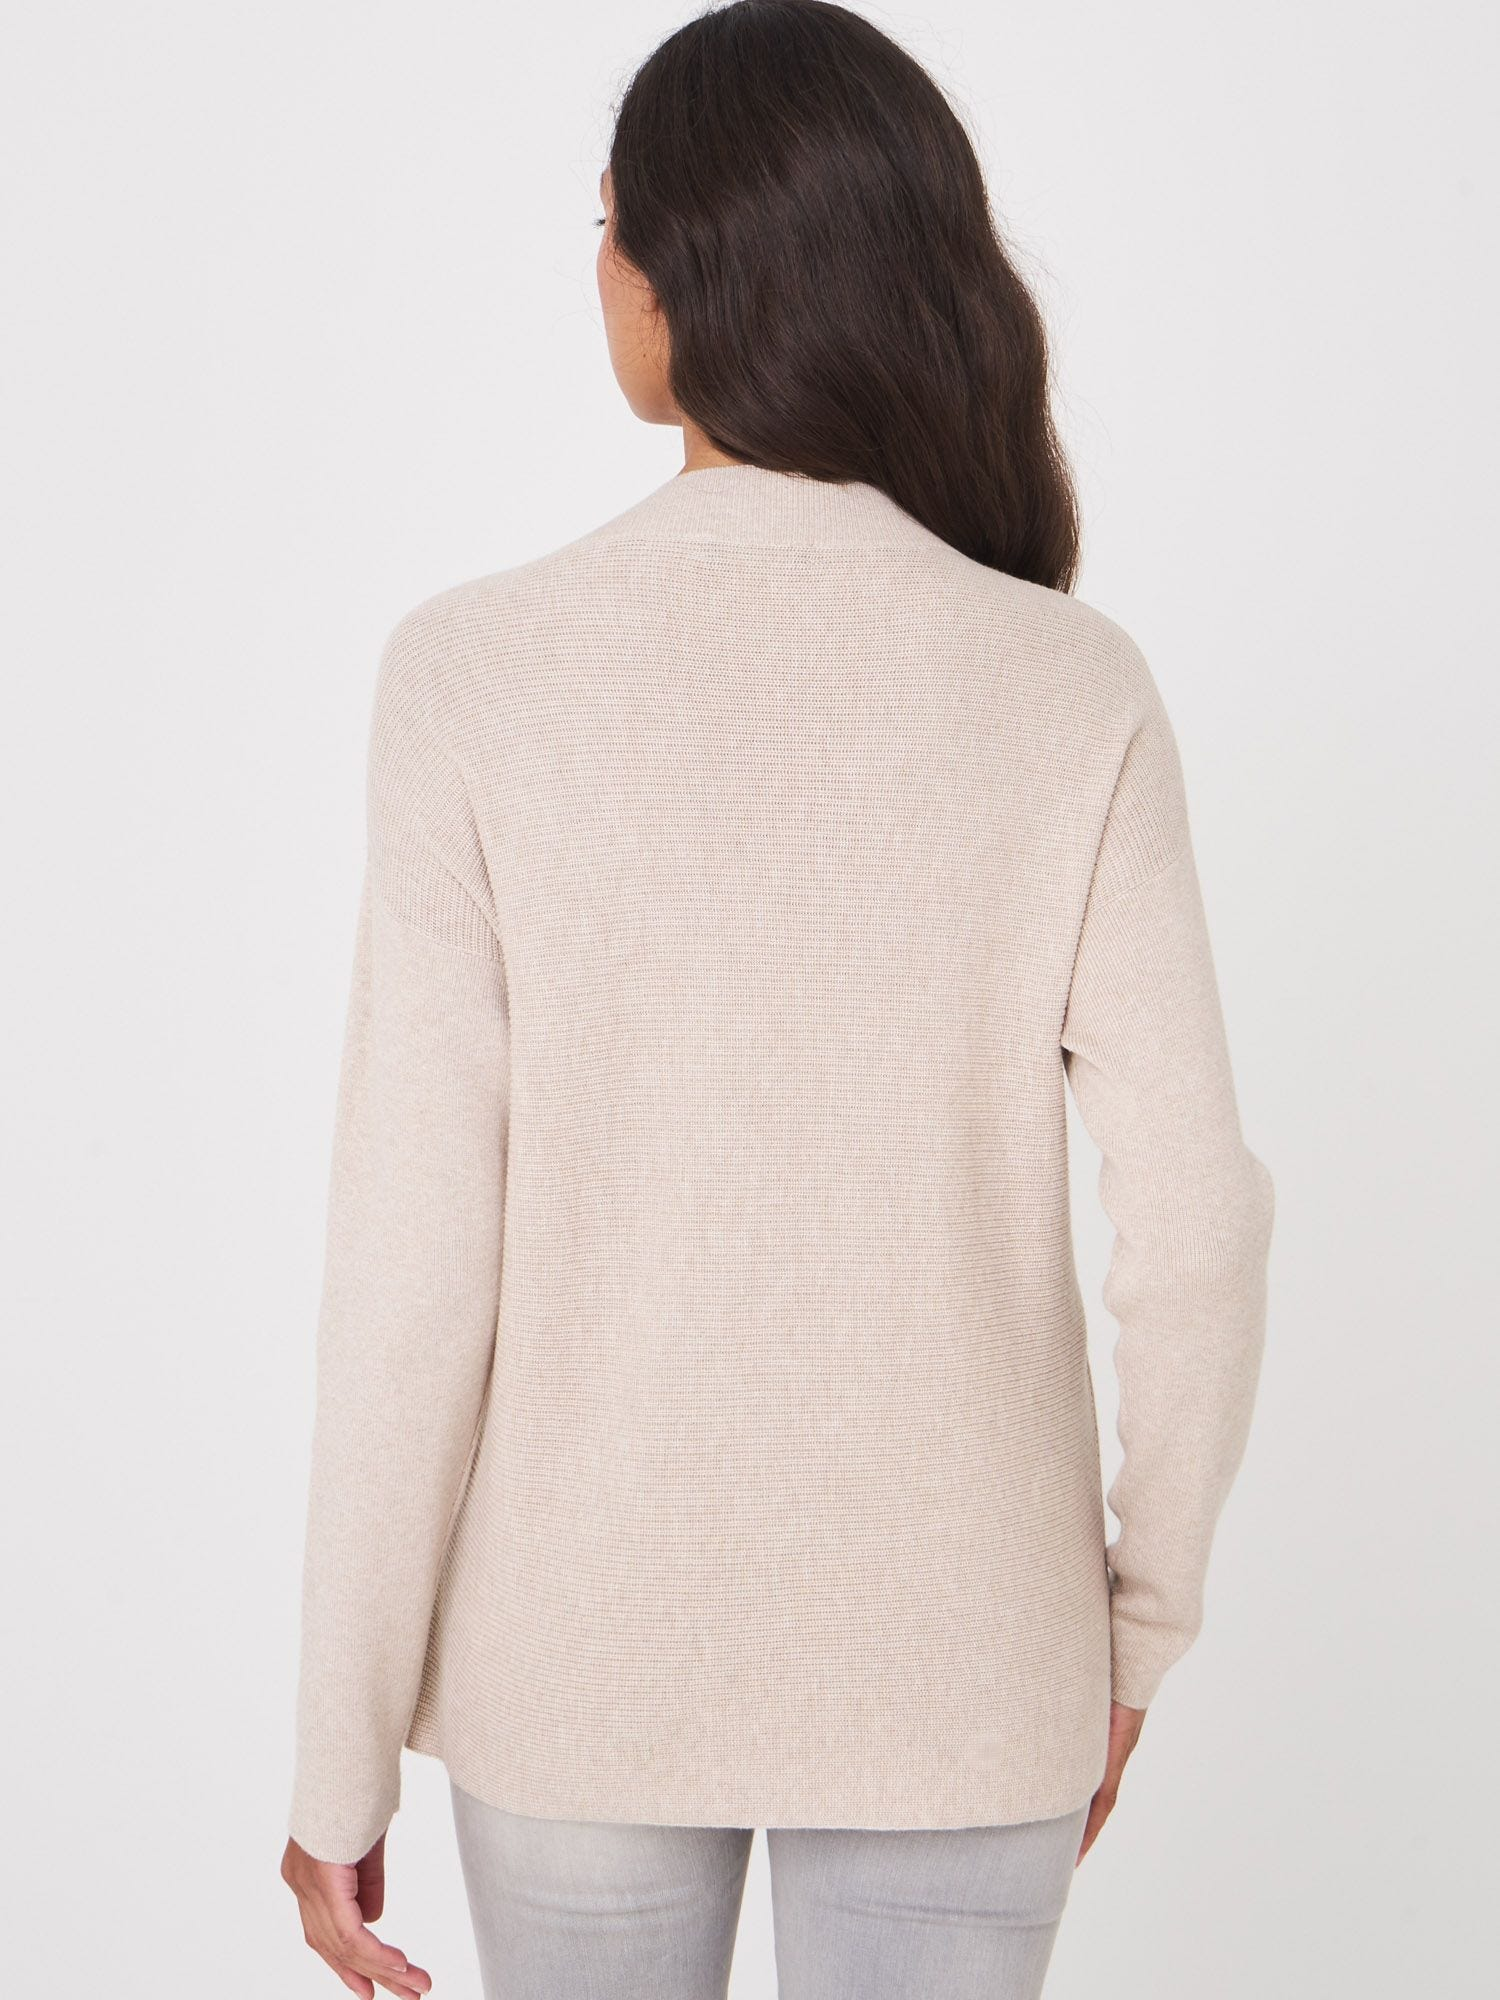 SWEATER WITH DEEP V-NECK AND FRONT POCKETS